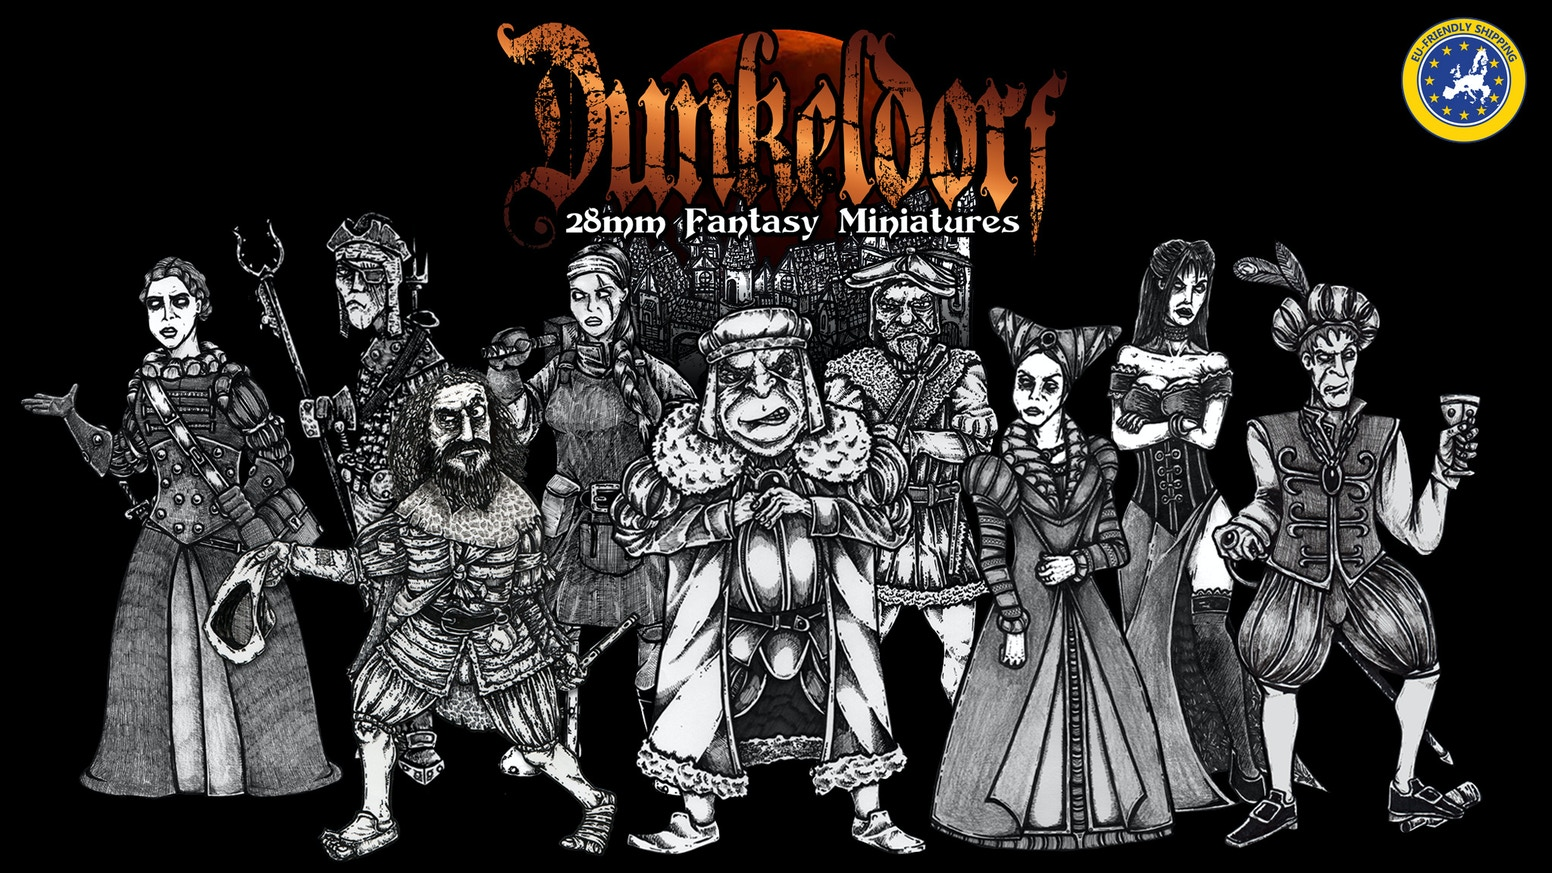 Dunkeldorf Miniatures - A line of characterful 28mm fantasy townsfolk miniatures for RPGs and Tabletop Gaming.